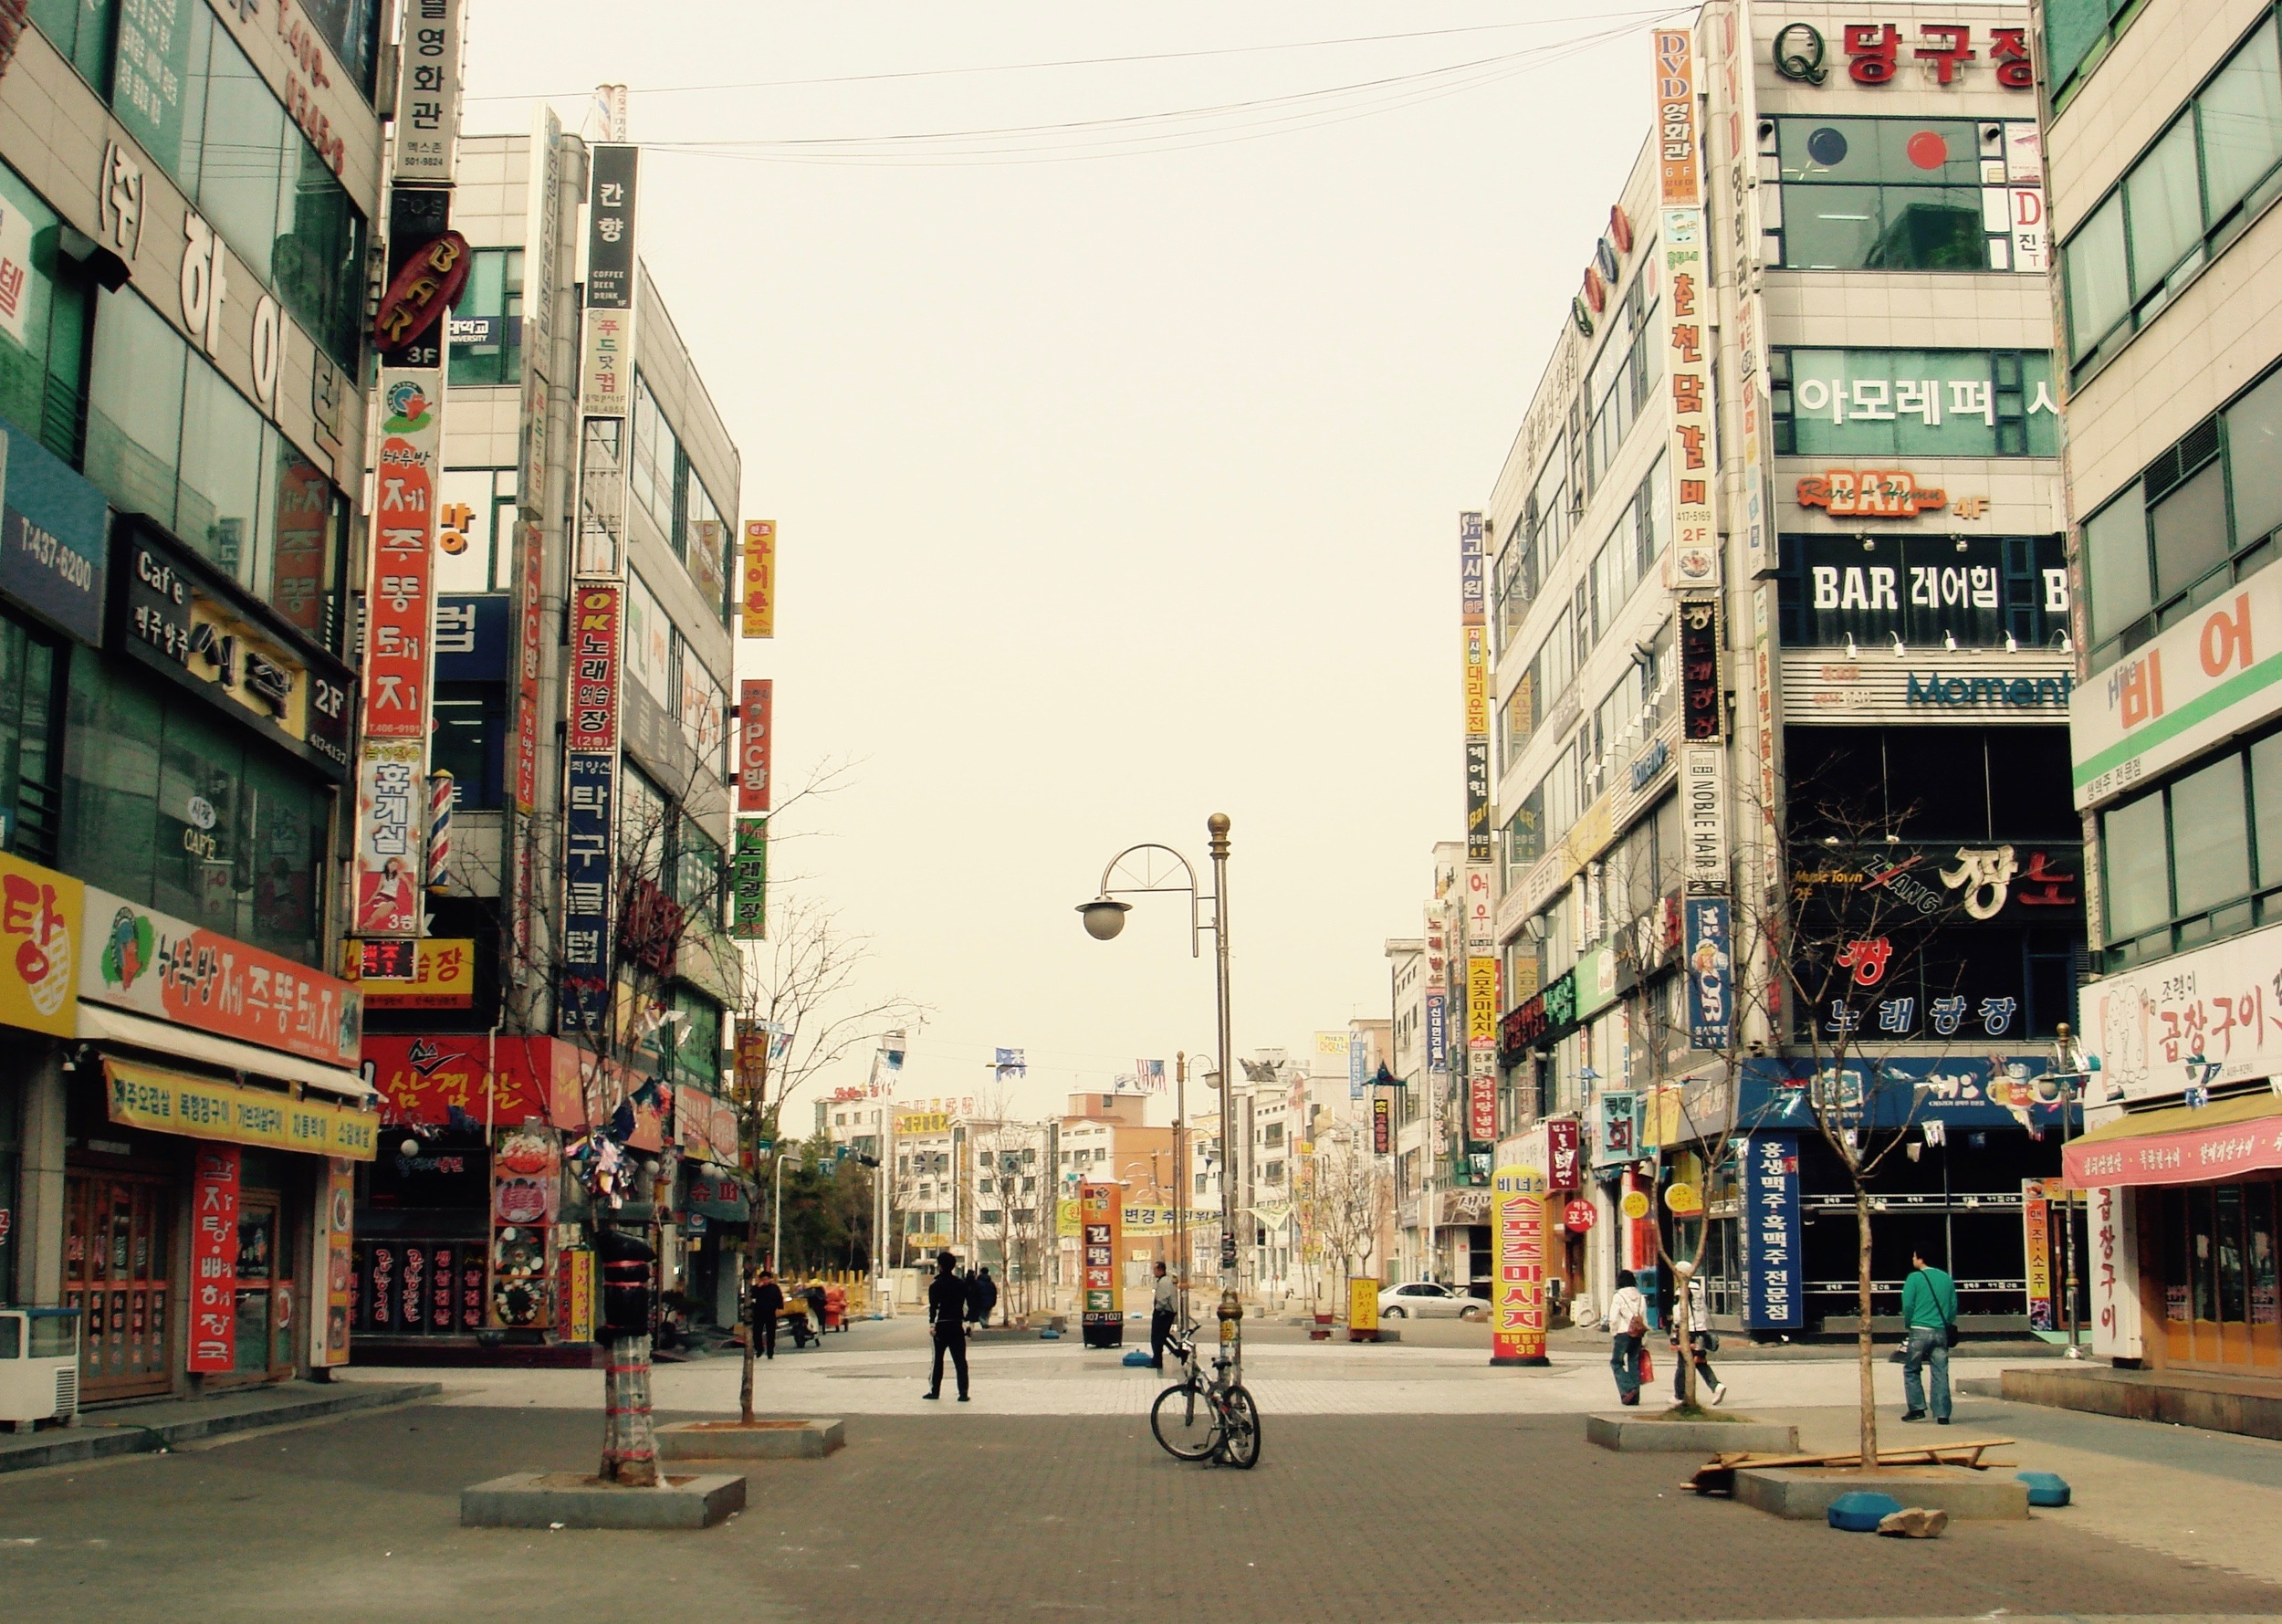 A main street in Ansan, South Korea where the English School that I taught at was located.